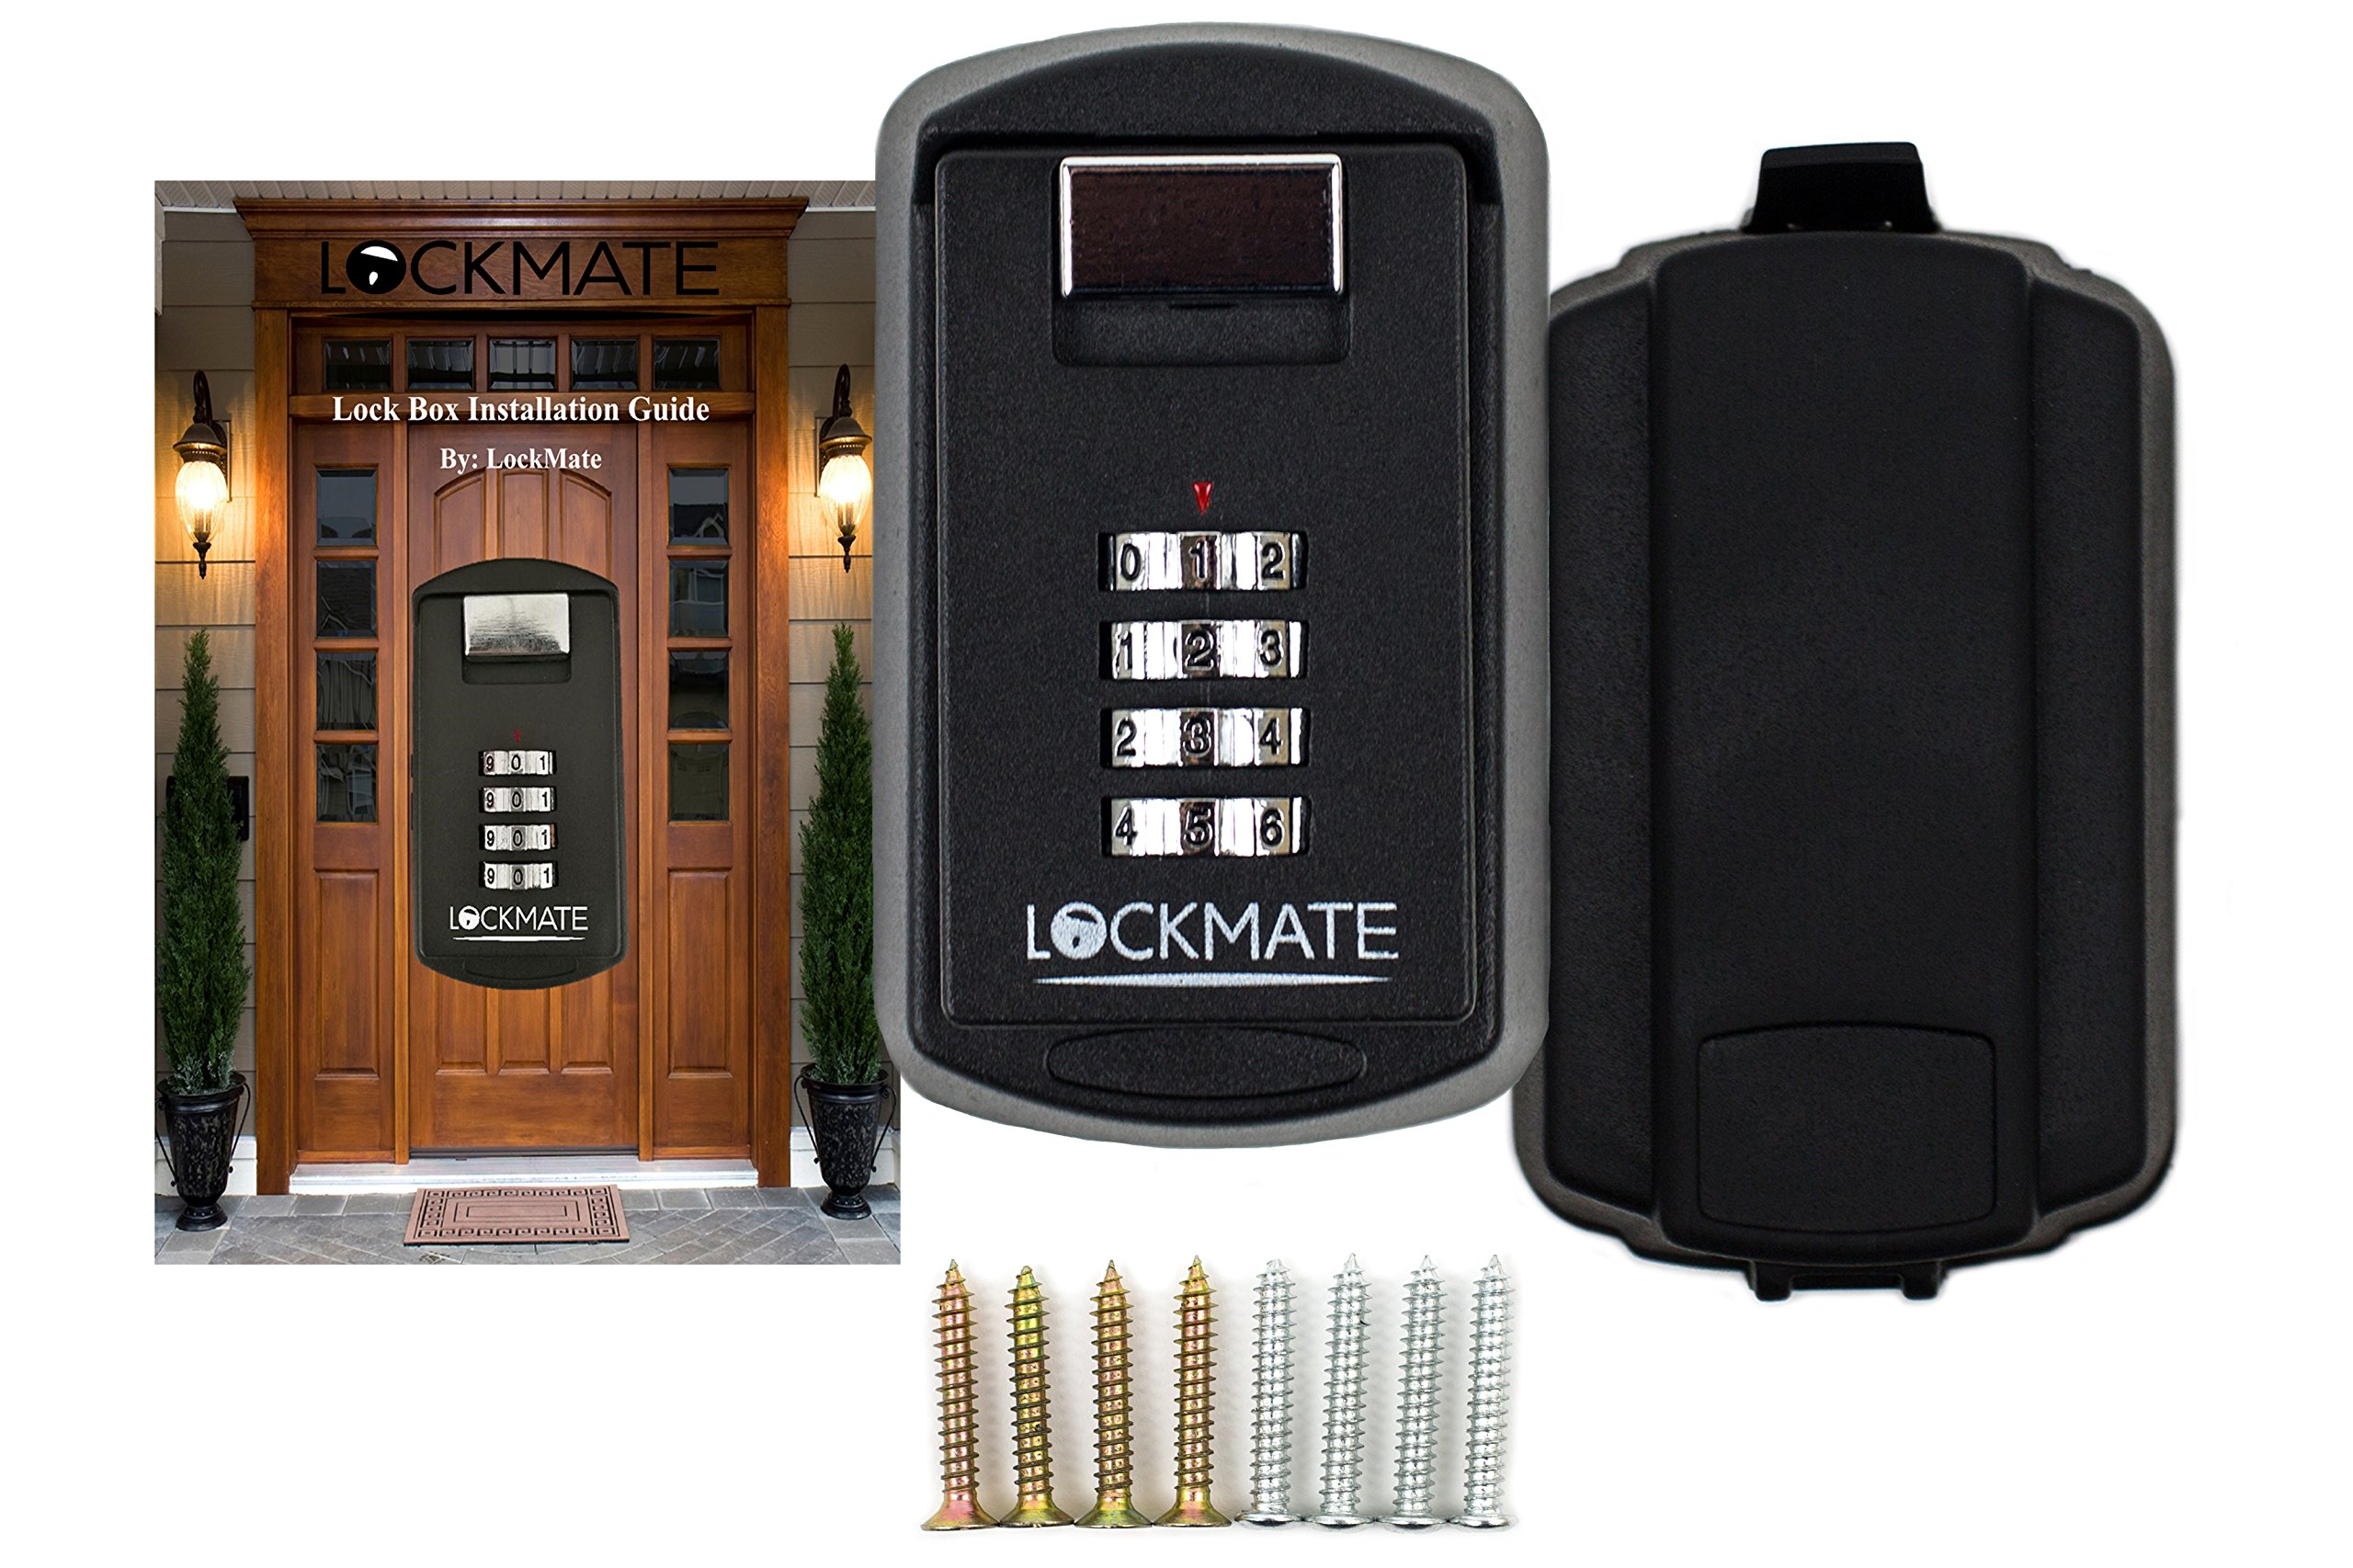 Key Lock Box /4 Digit Security Combination Passcode For Front Door Master Key - Set Includes Wall Mount Installation Kit & Weatherproof Cover (Perfect for Contractors, Realtors, and Rental Properties)